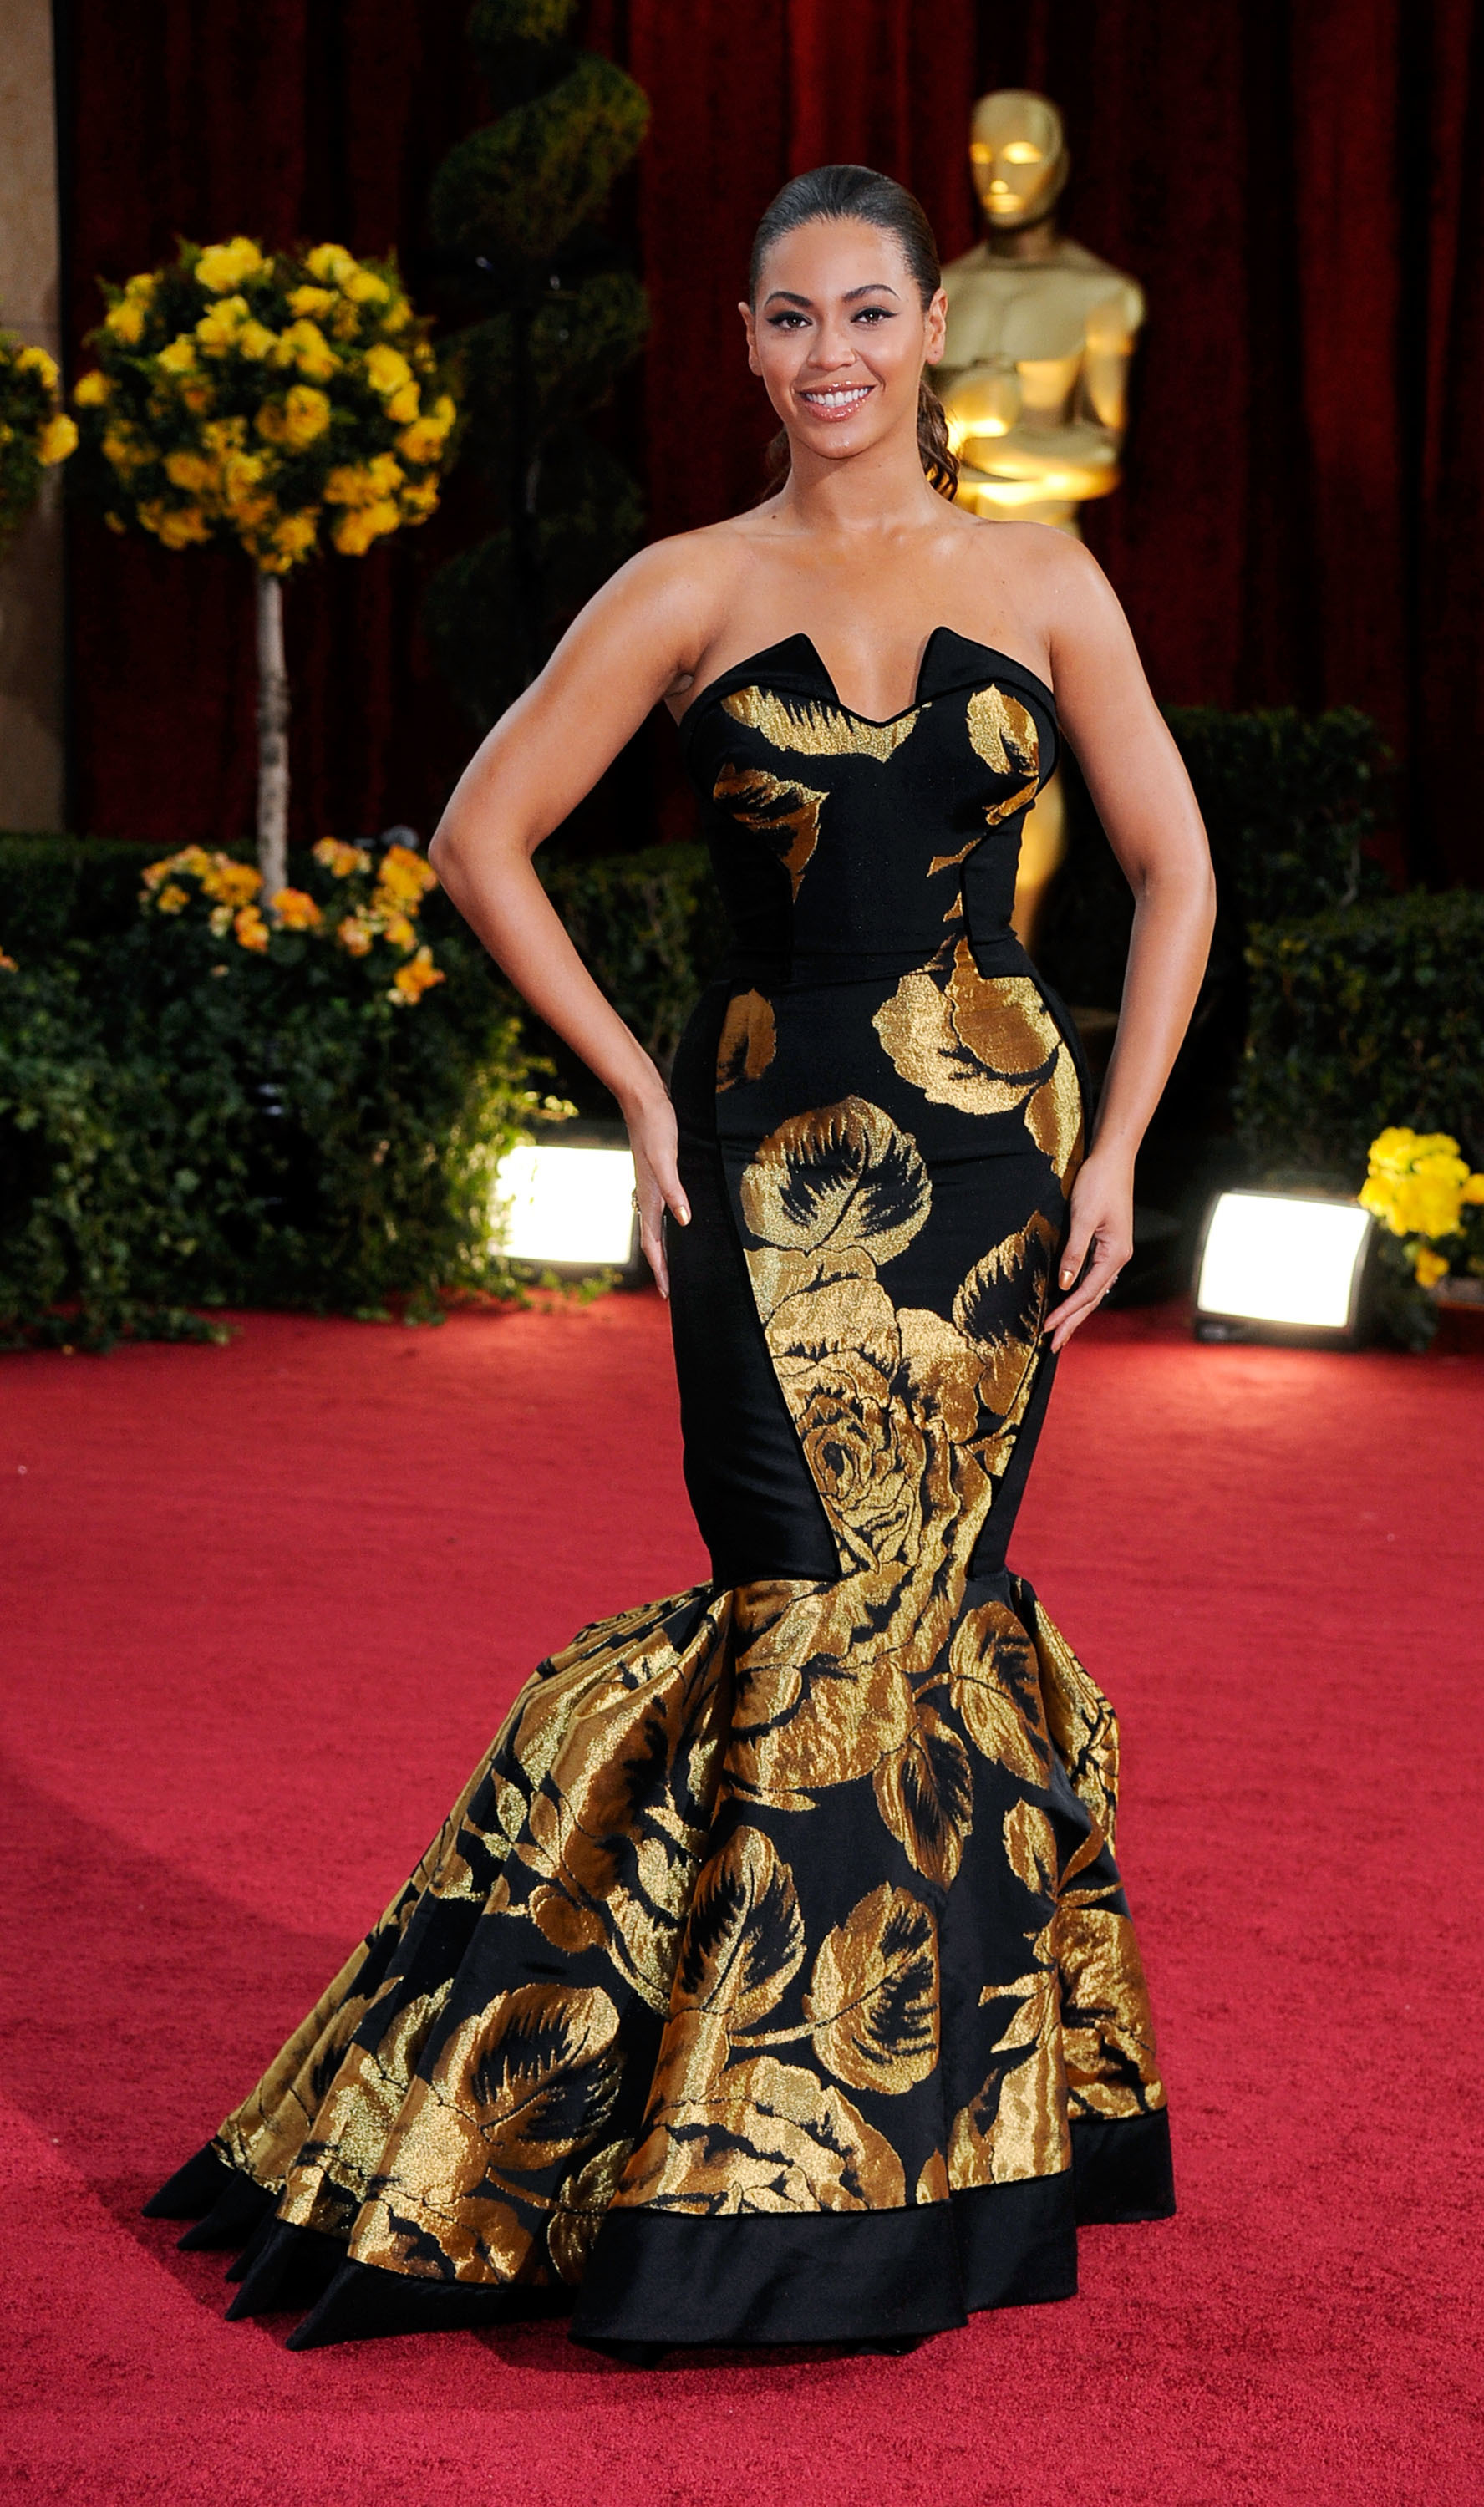 Beyonce Knowles arrives at the 81st Annual Academy Awards held at Kodak Theatre in Los Angeles on on Feb 22, 2009.